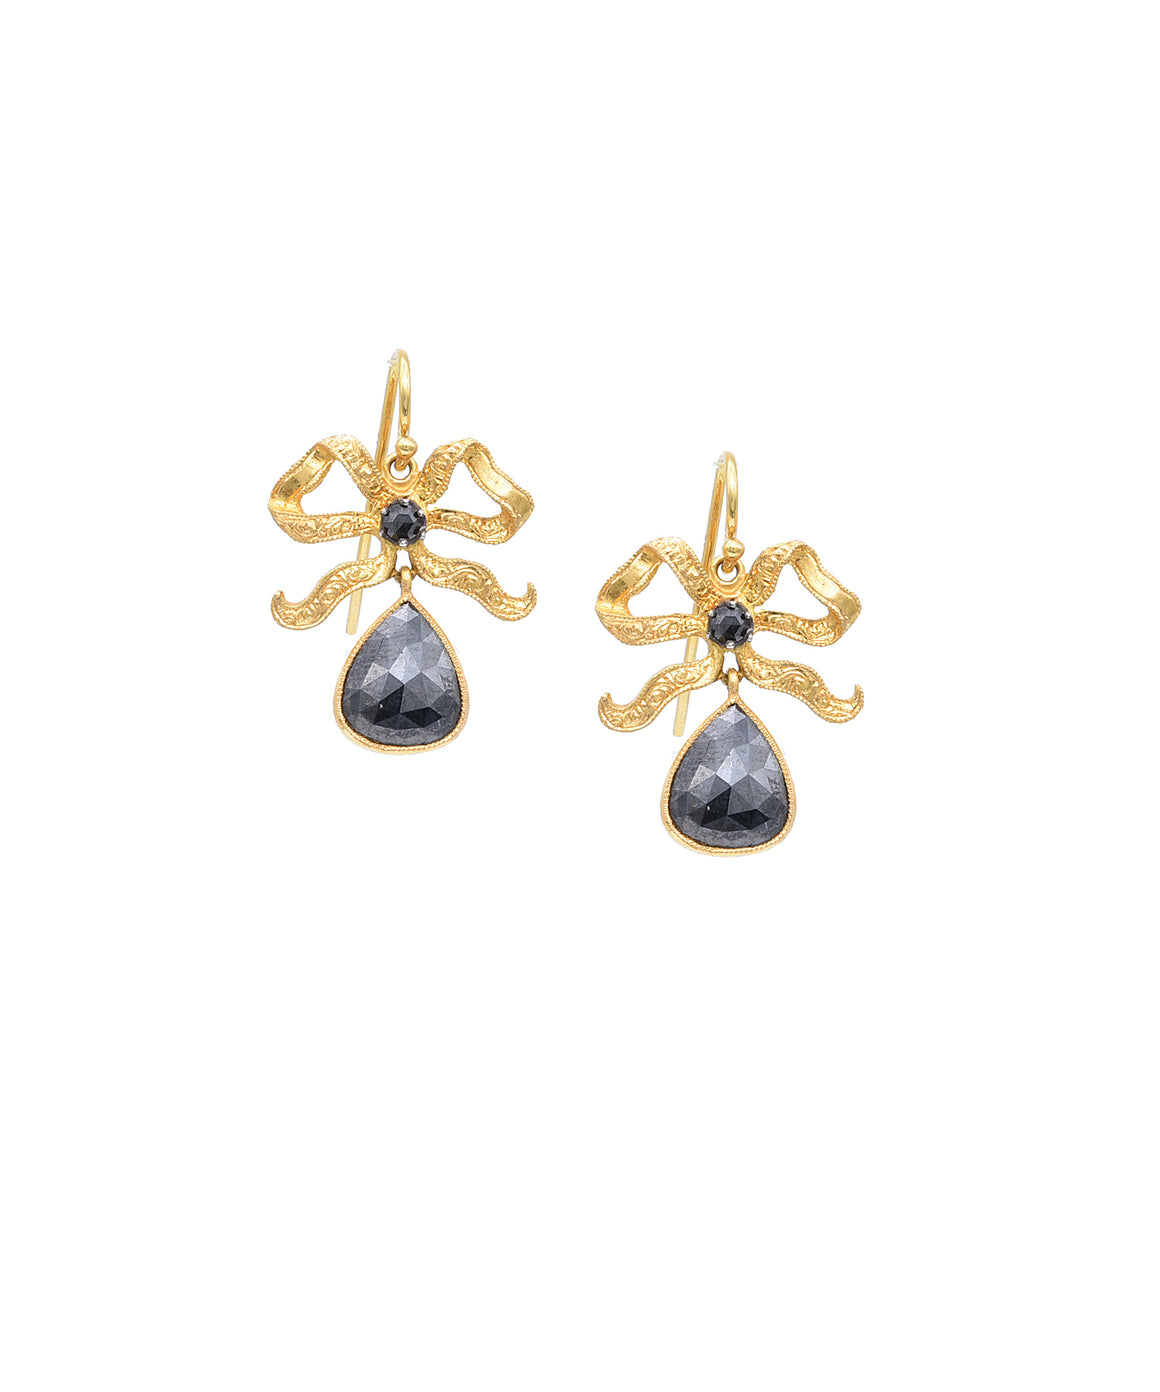 Bow earrings with black diamond drops